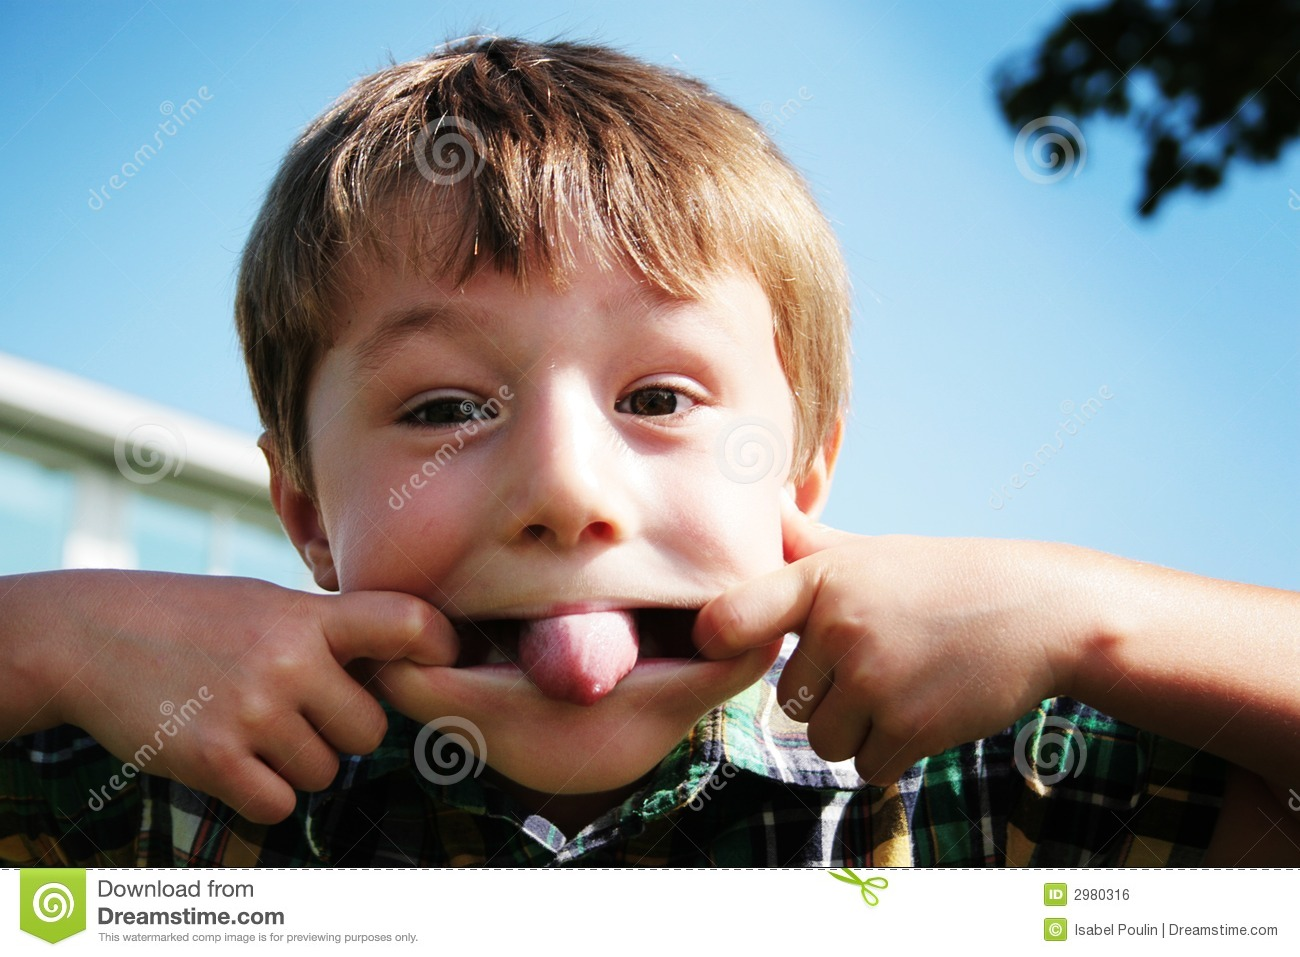 portrait of a young boy making a funny face by stretching his mouth